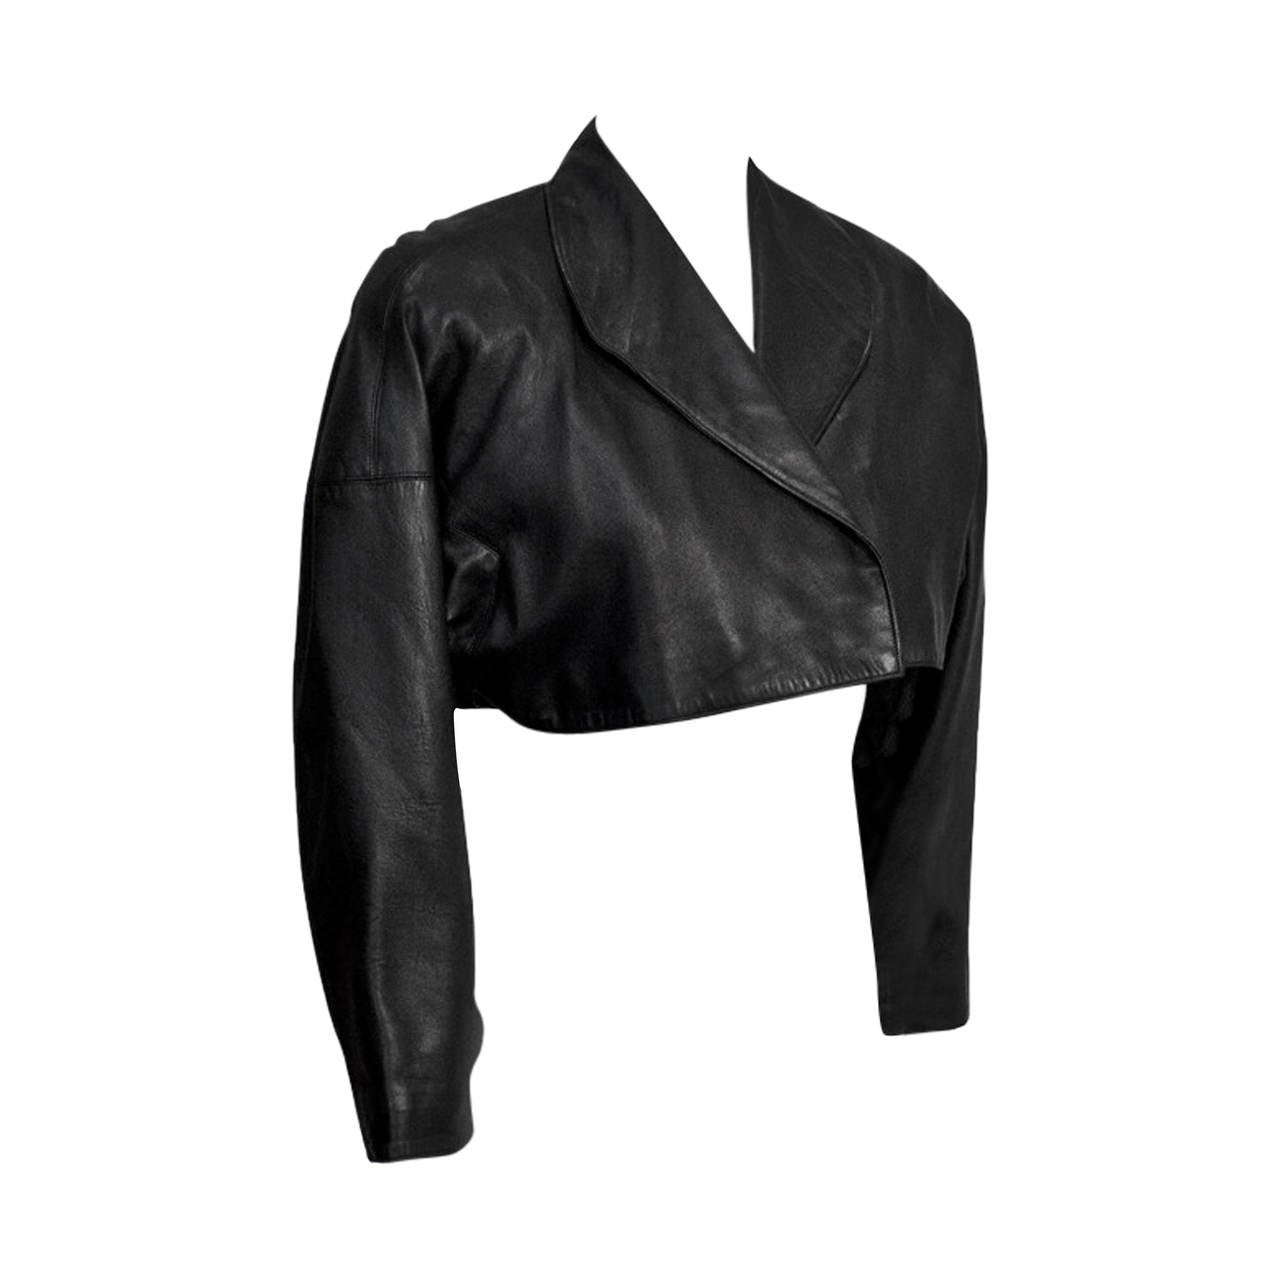 Early 1980s Alaia Black Leather Cropped Jacket at 1stdibs